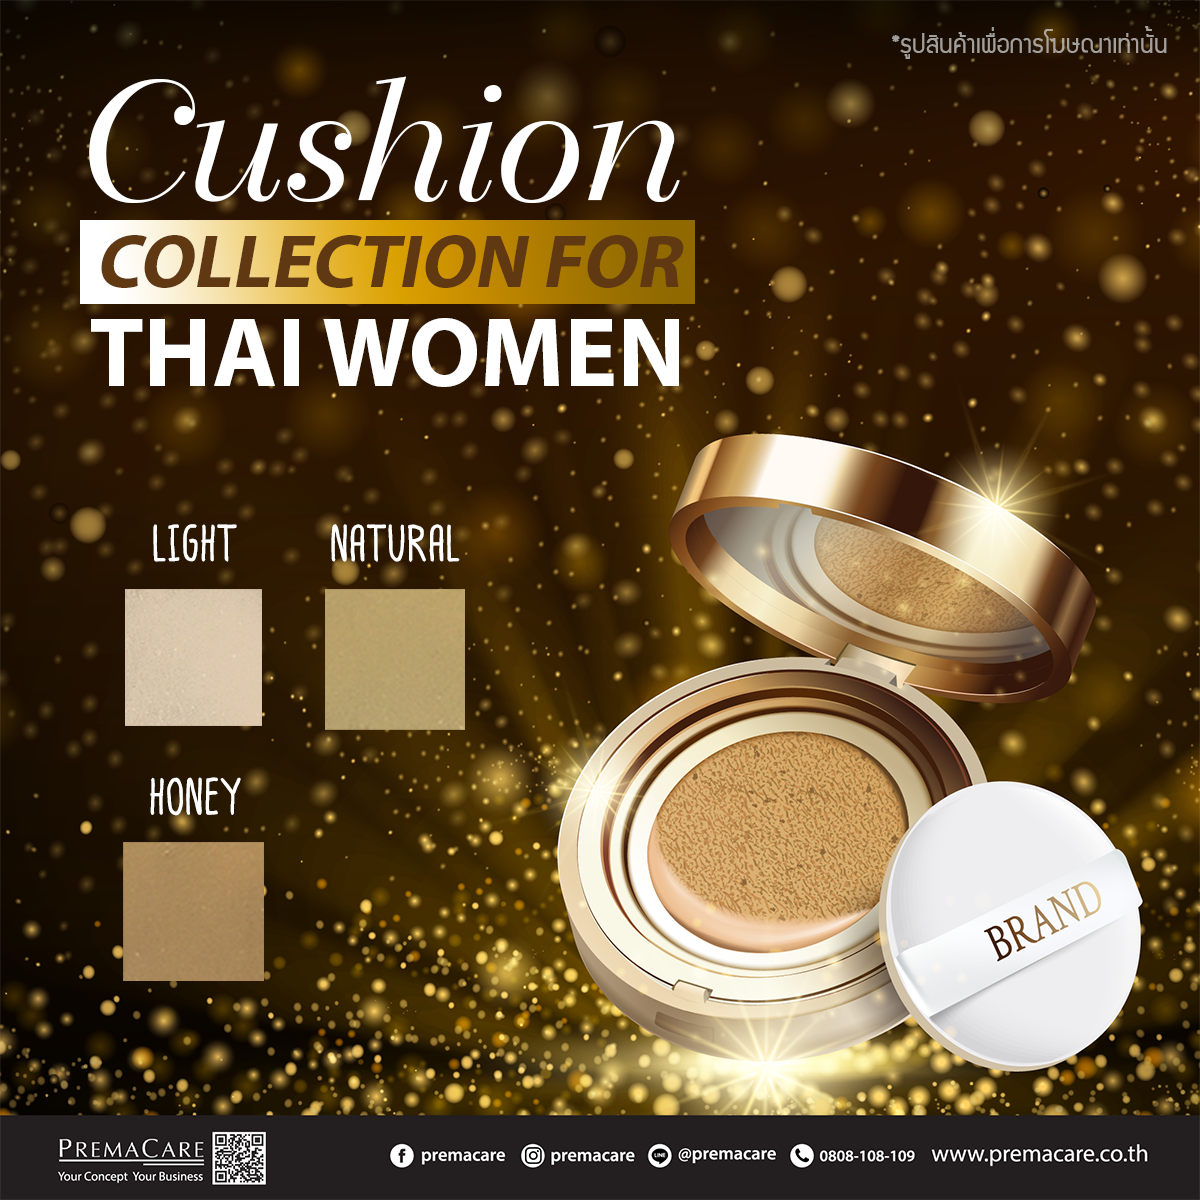 CUSHION COLLECTION FOR THAI WOMEN